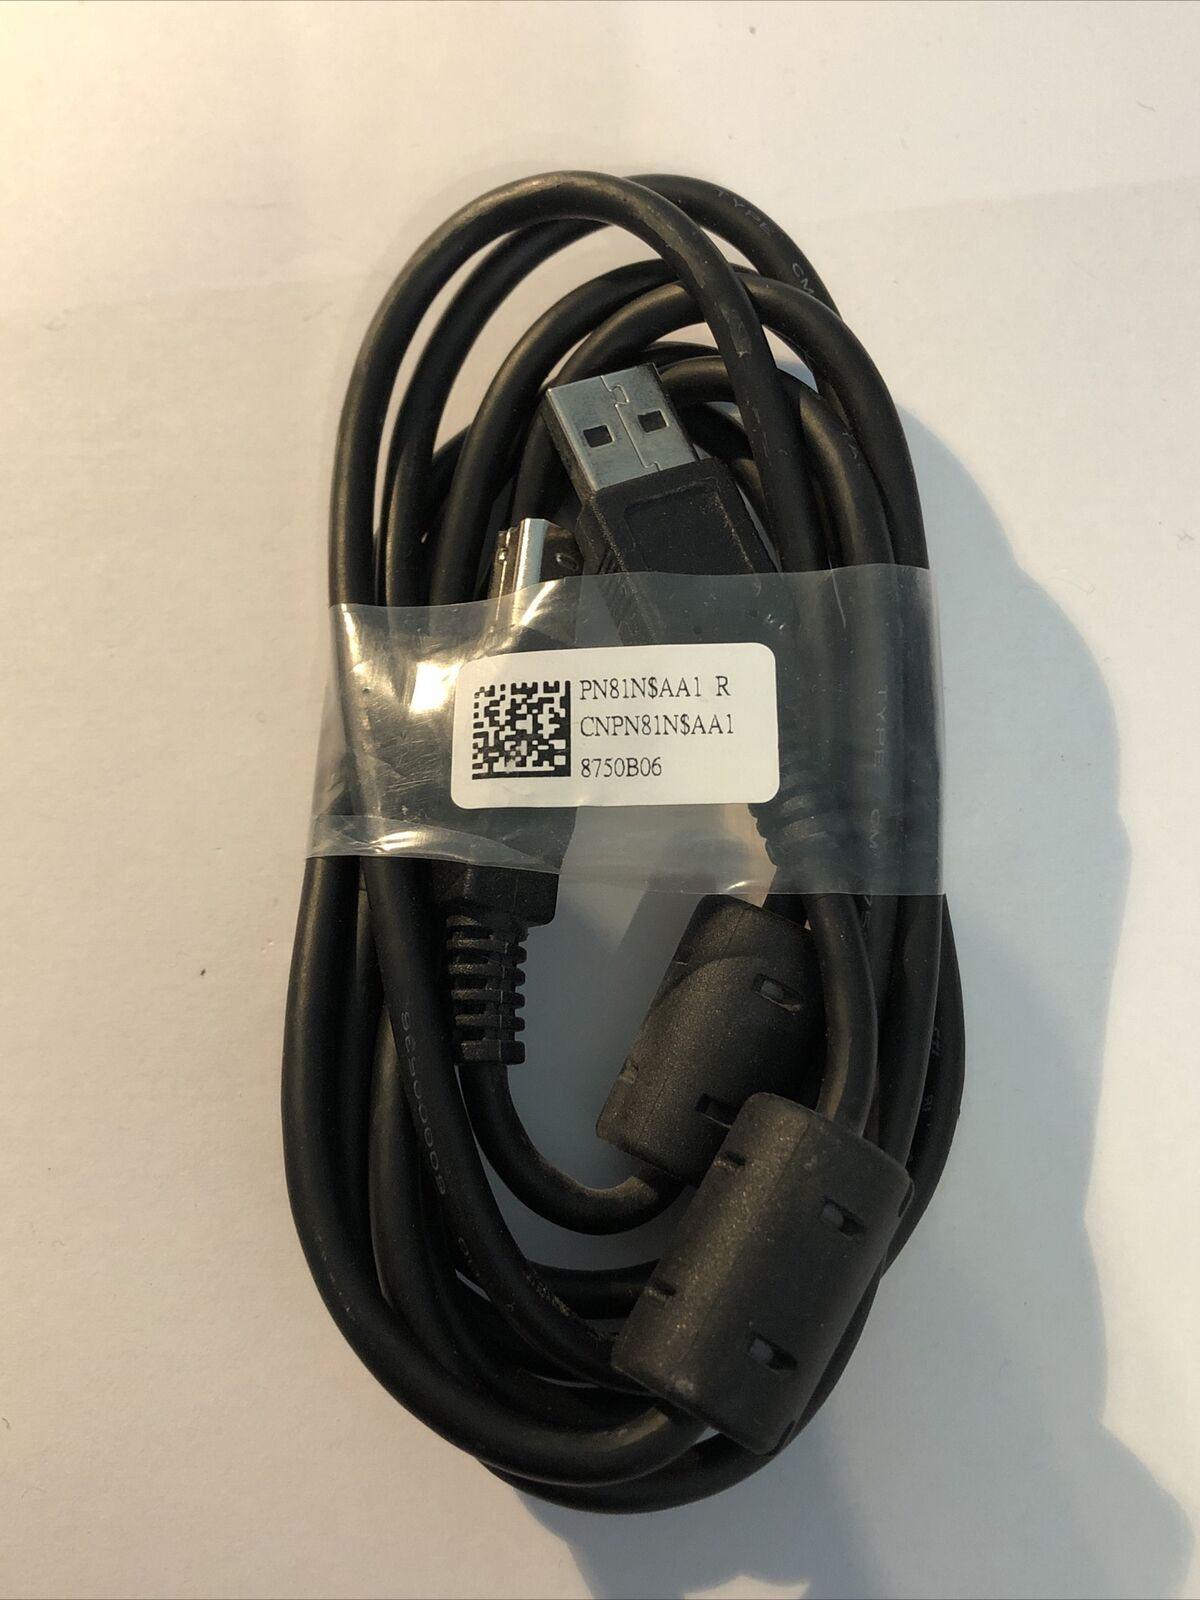 USB Printer Cable Monitor Connector